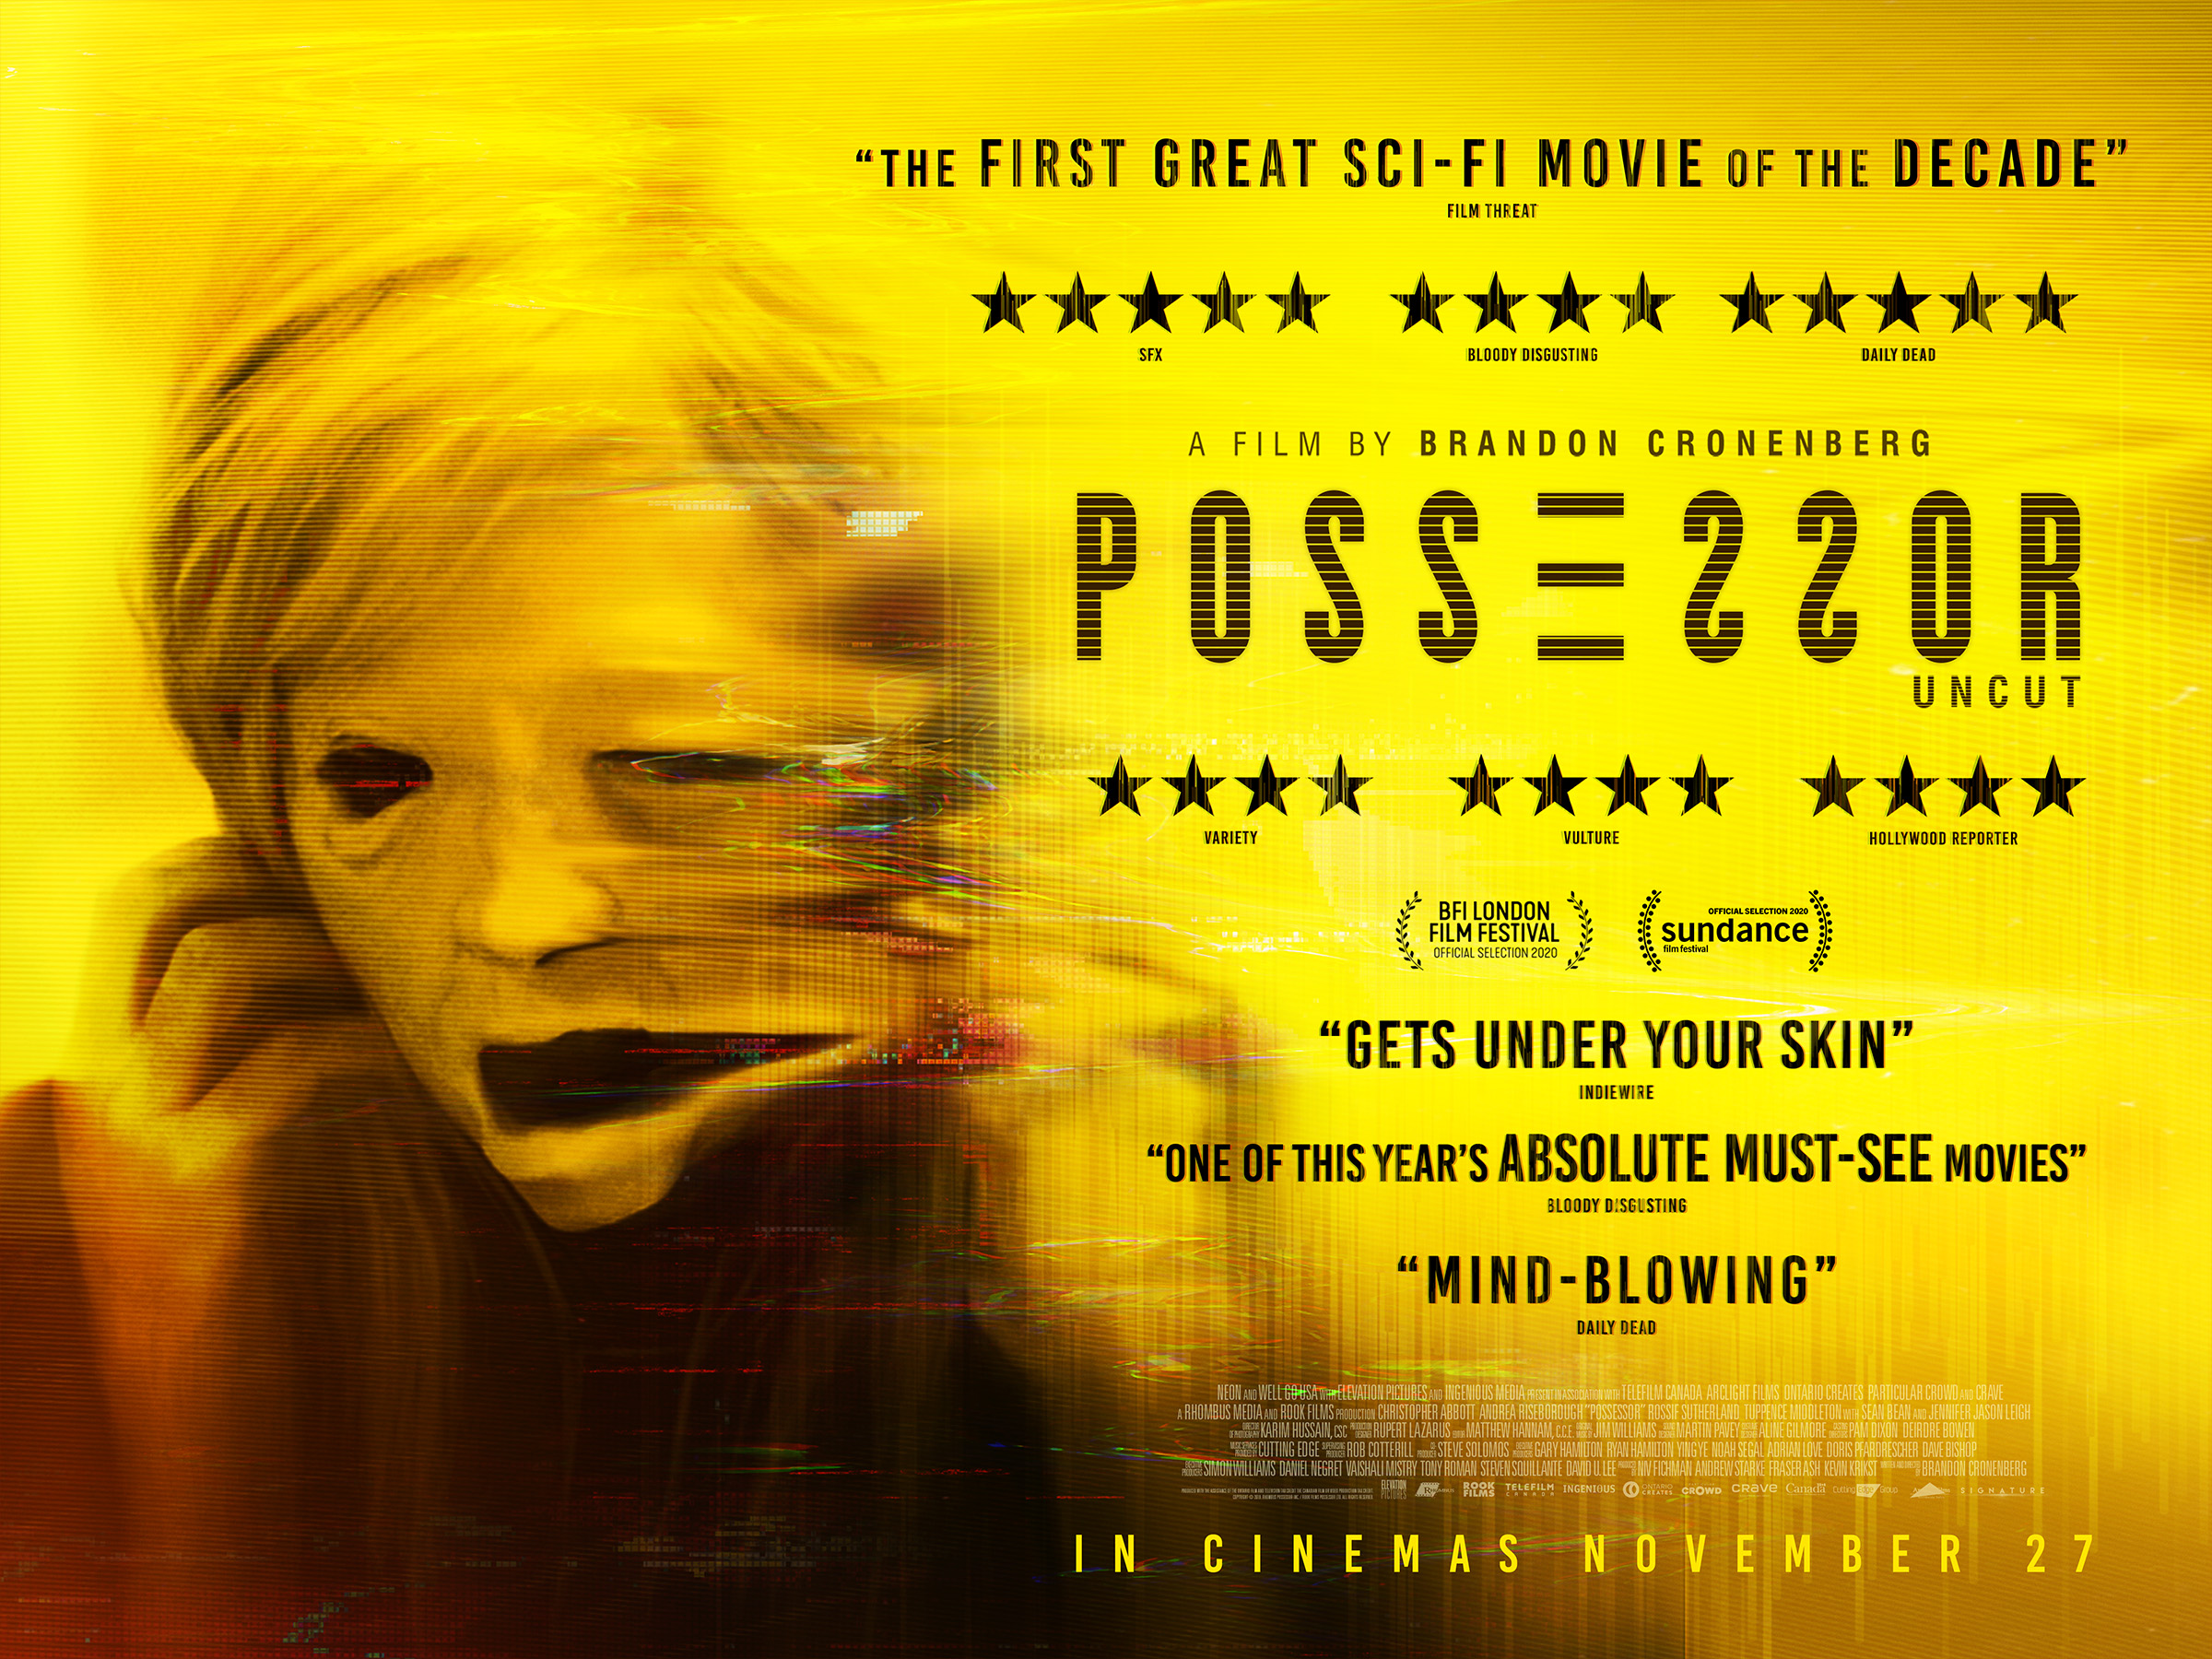 Signature Entertainment Presents Brandon Cronenberg's Possessor in Cinemas (UK / 27 November)